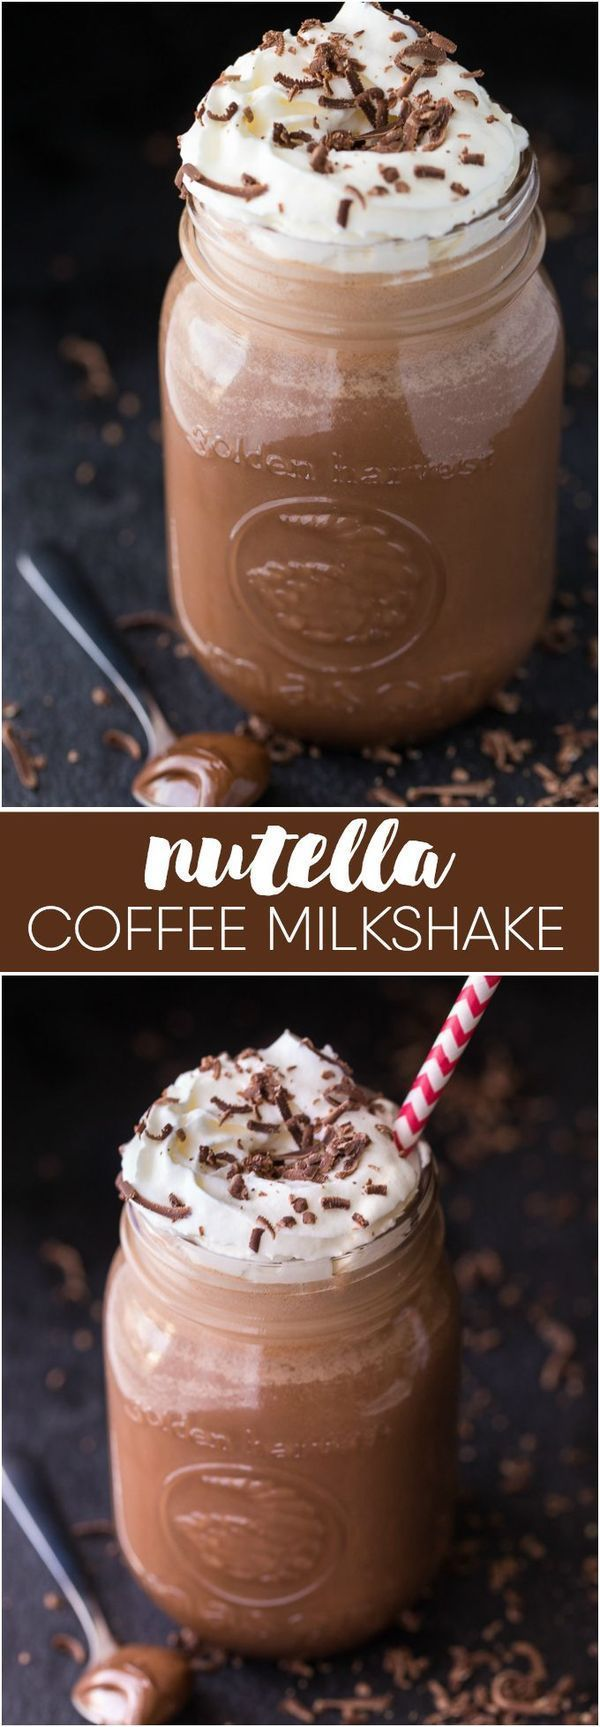 Coffee Milkshake Nutella Coffee Milkshake - Perfectly sweet, chocolatey with a hint of nuttiness! A cold and refreshing way to get your caffeine fix.Nutella Coffee Milkshake - Perfectly sweet, chocolatey with a hint of nuttiness! A cold and refreshing way to get your caffeine fix.